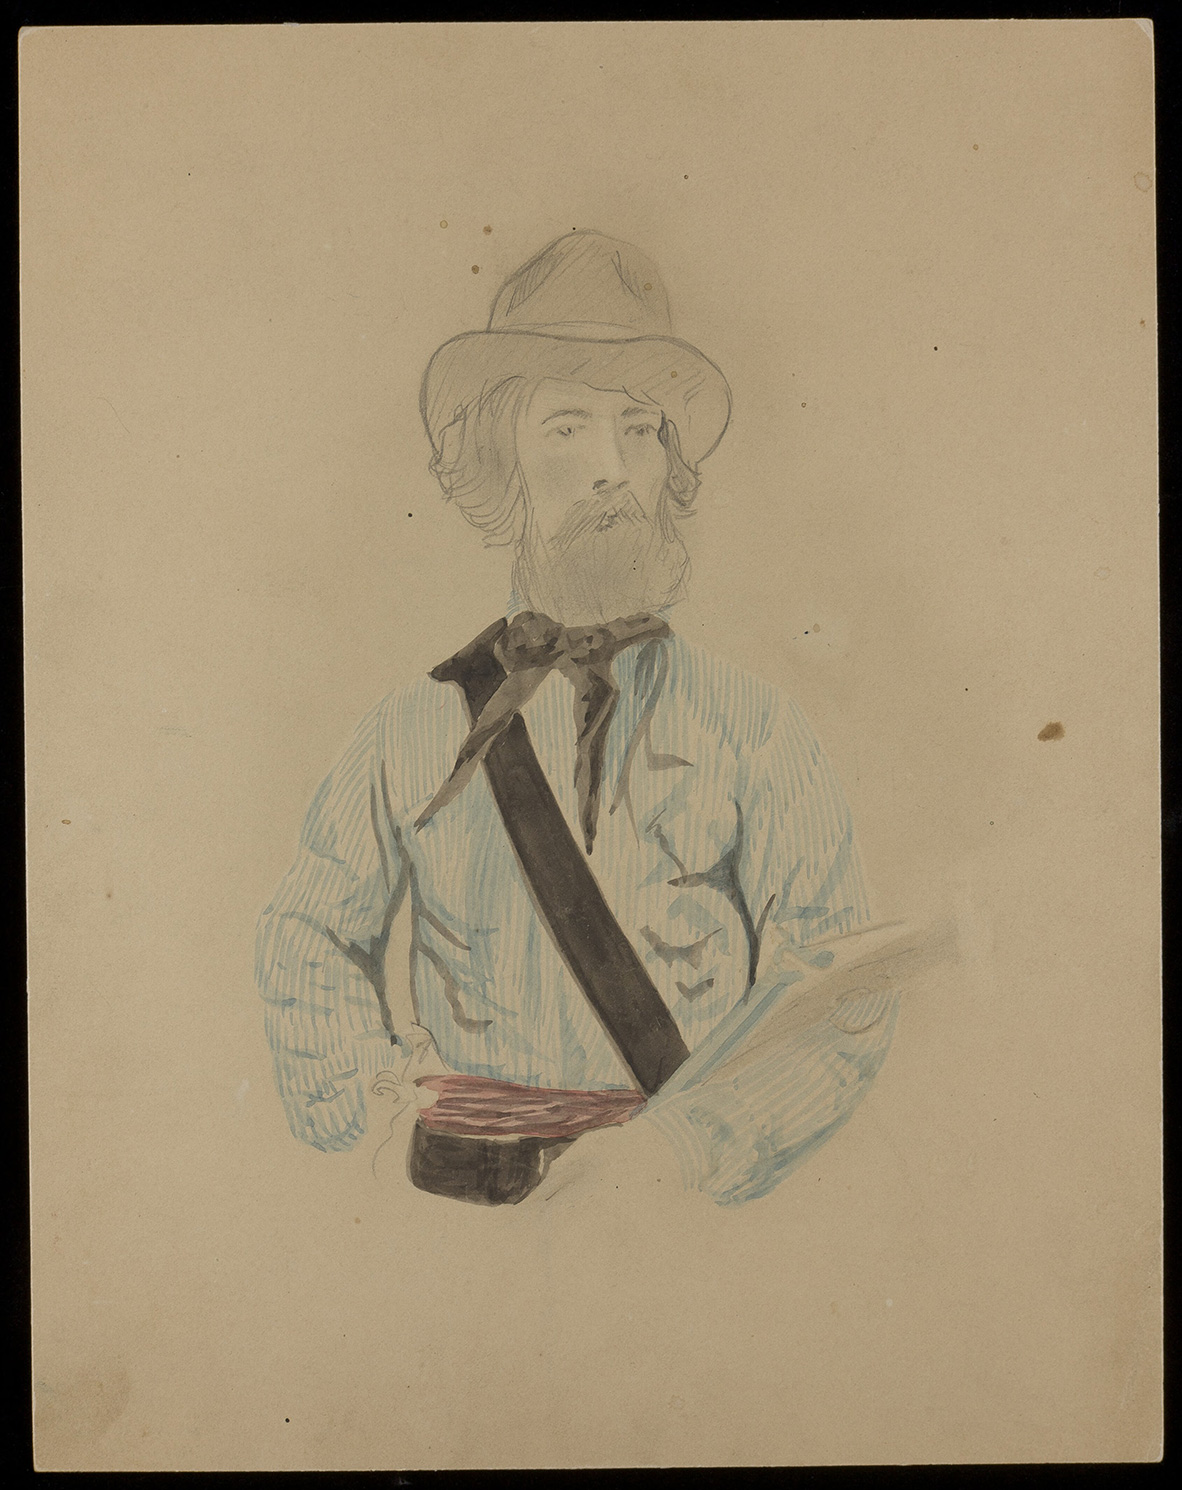 Pioneer sketches publicscrutiny Image collections